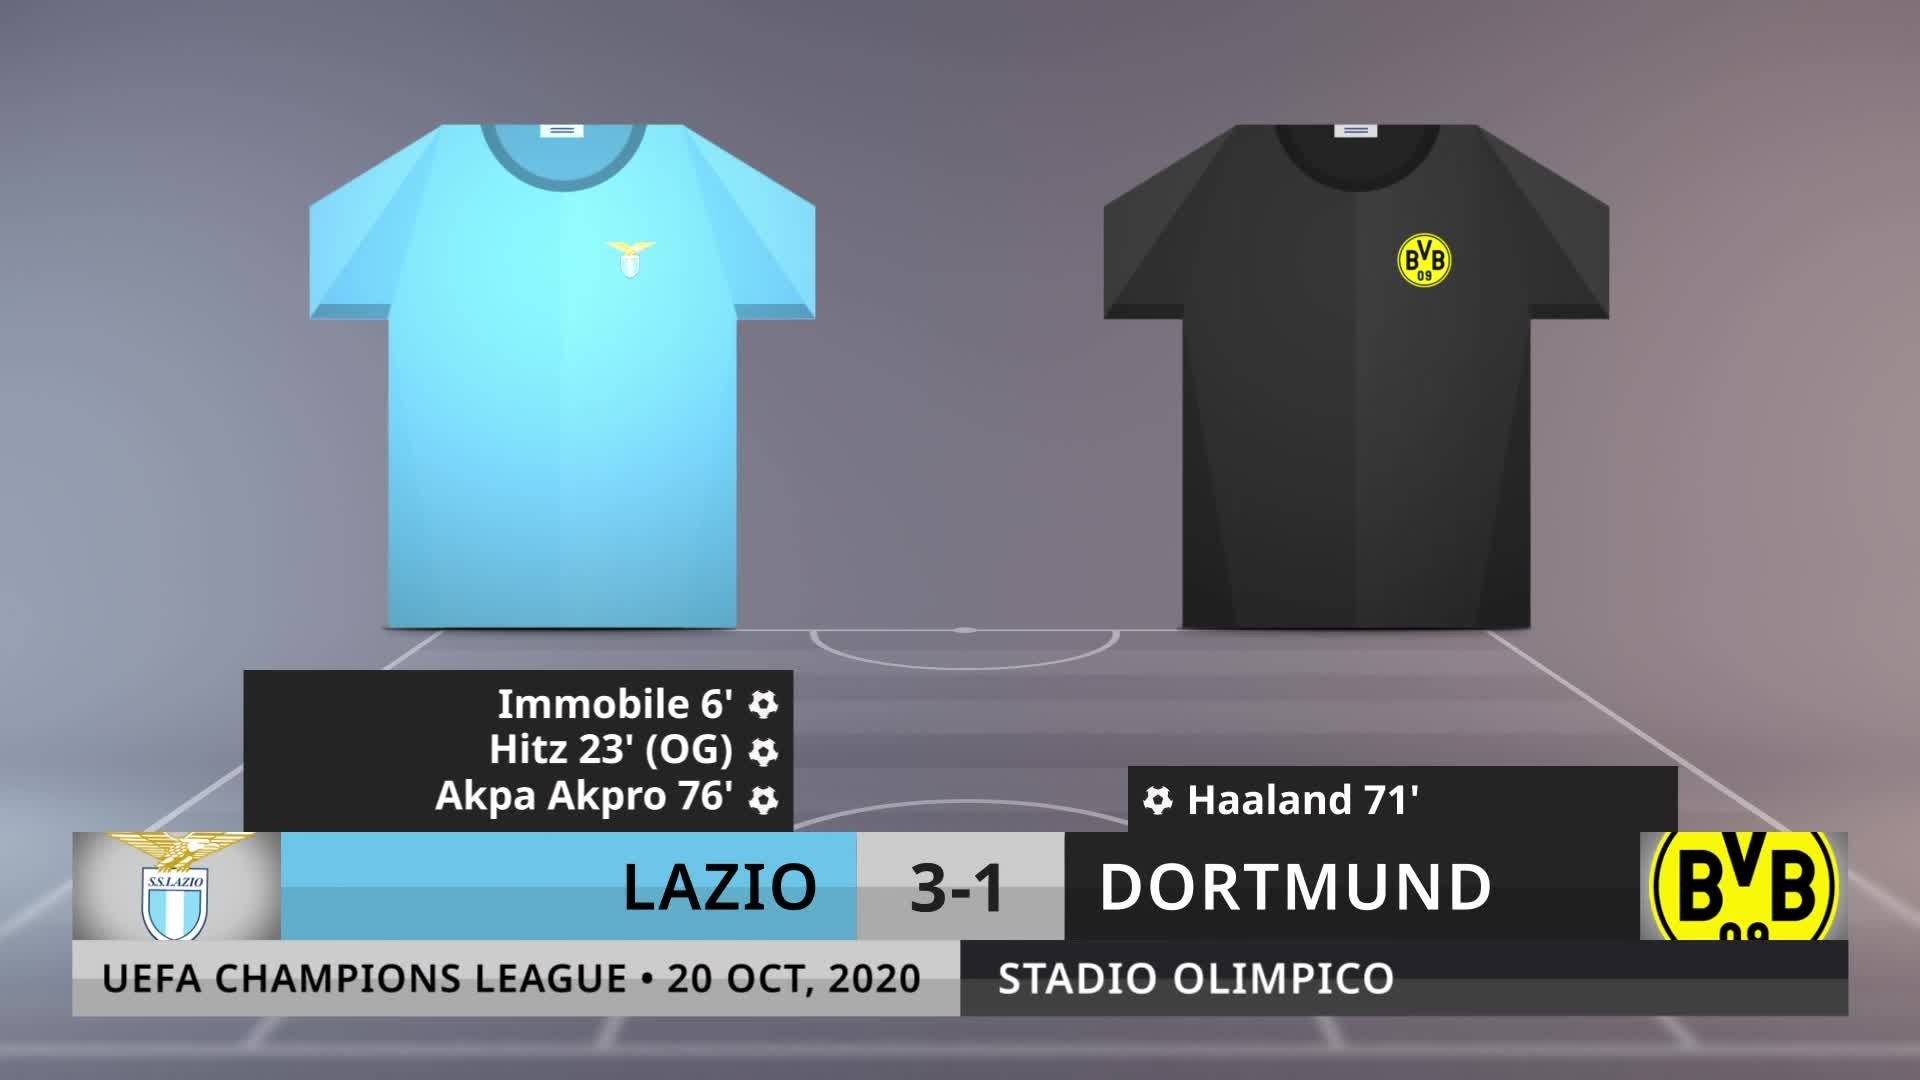 Match Review Lazio Vs Dortmund On 20 10 2020 Video Dailymotion